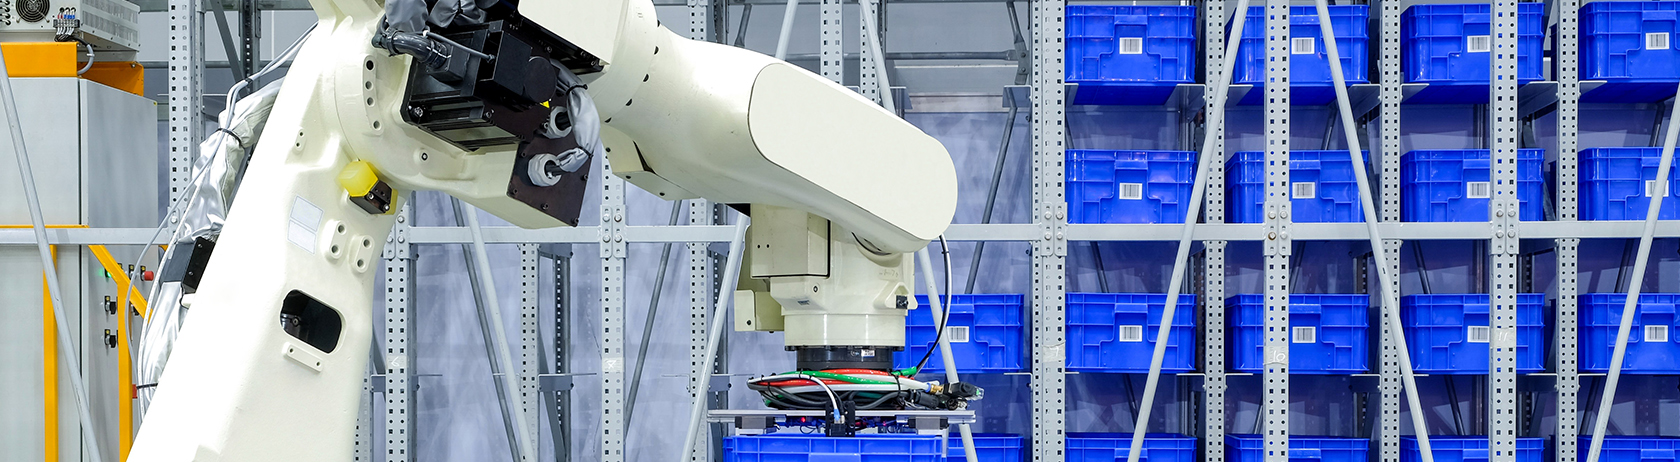 Smart logistics shown with an industrial robotic working in a factory warehouse